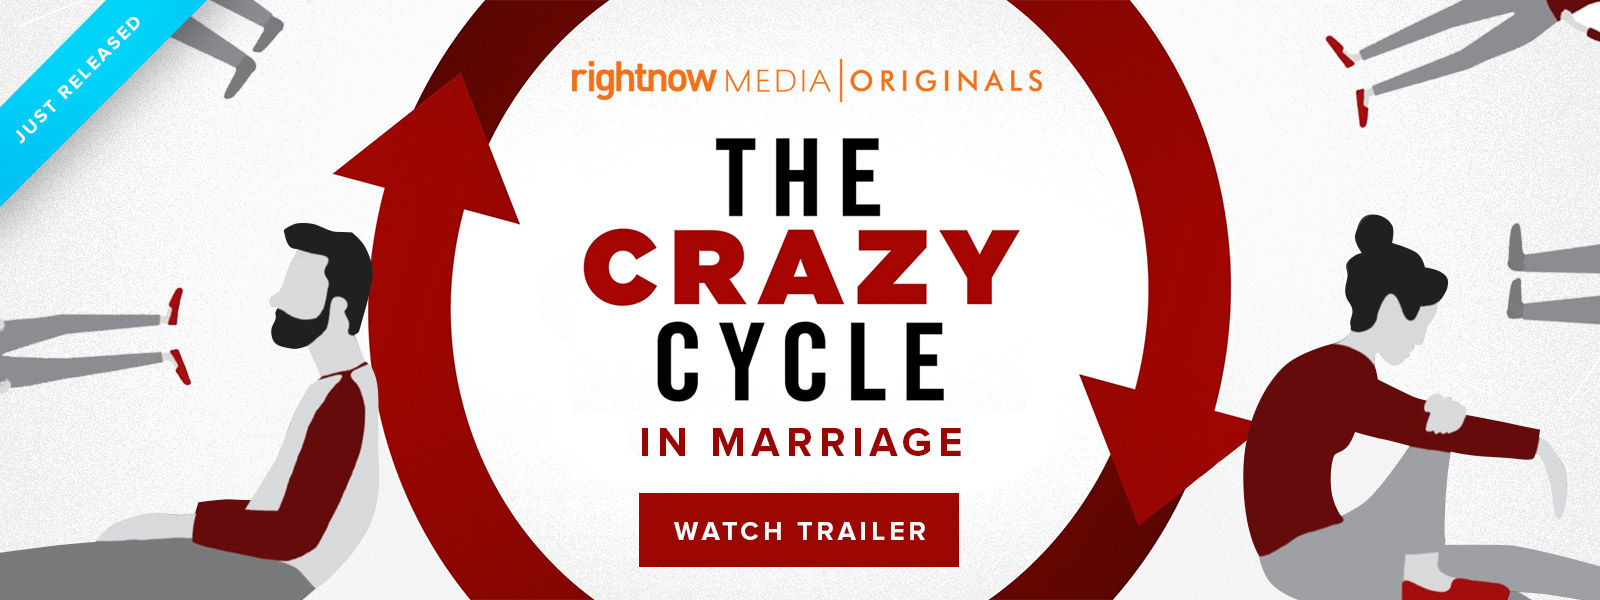 The Crazy Cycle in Marriage